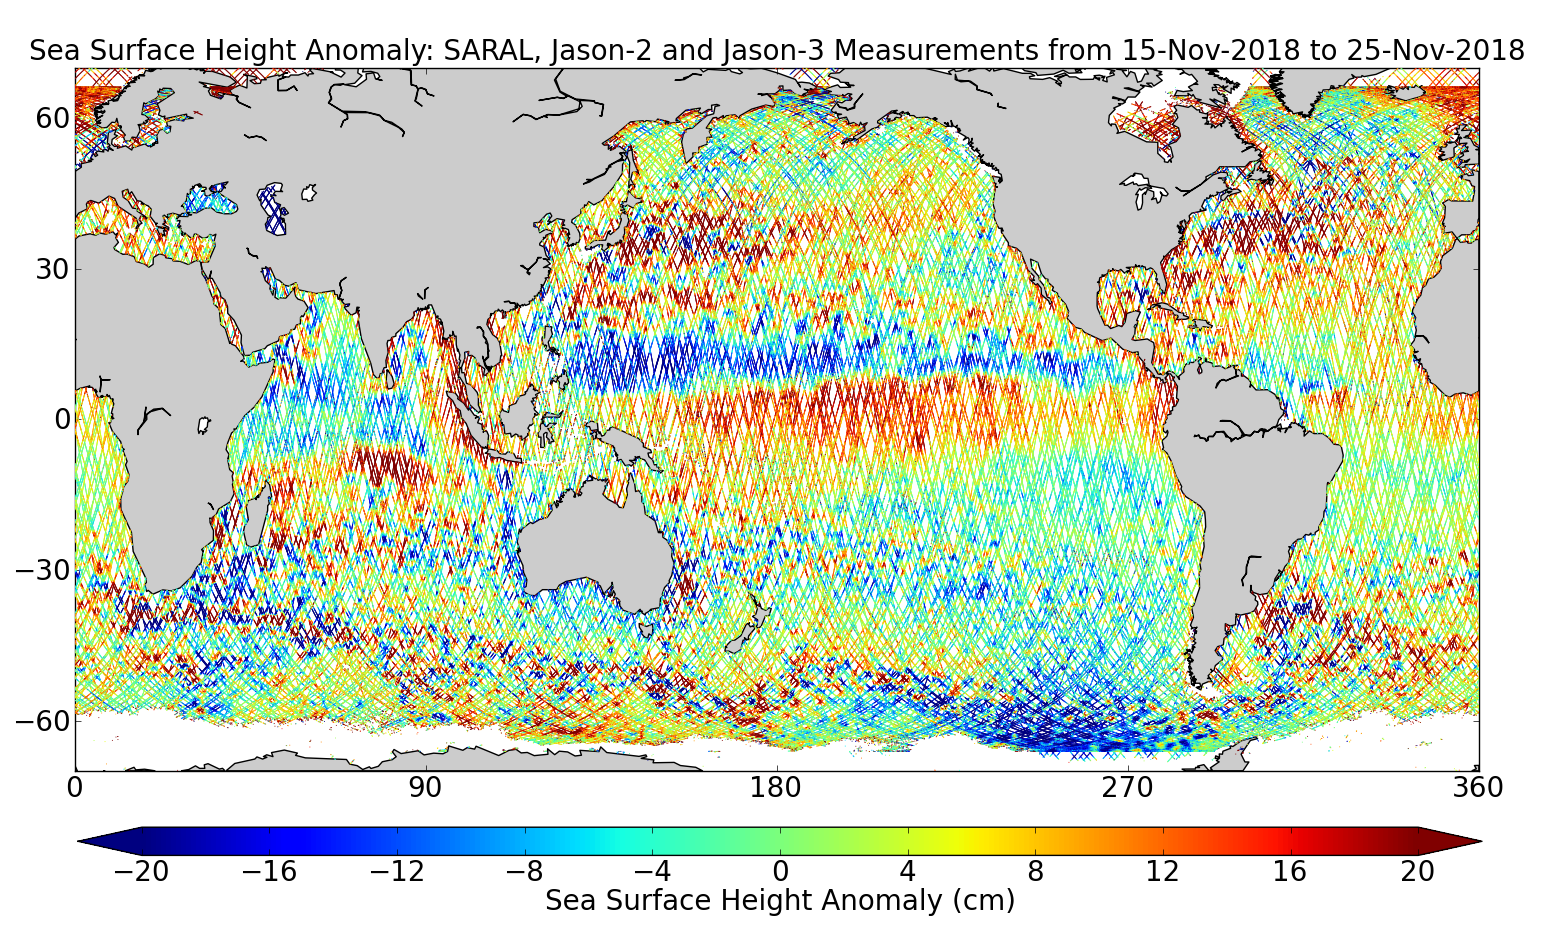 Sea Surface Height Anomaly: SARAL, Jason-2 and Jason-3 Measurements from 15-Nov-2018 to 25-Nov-2018